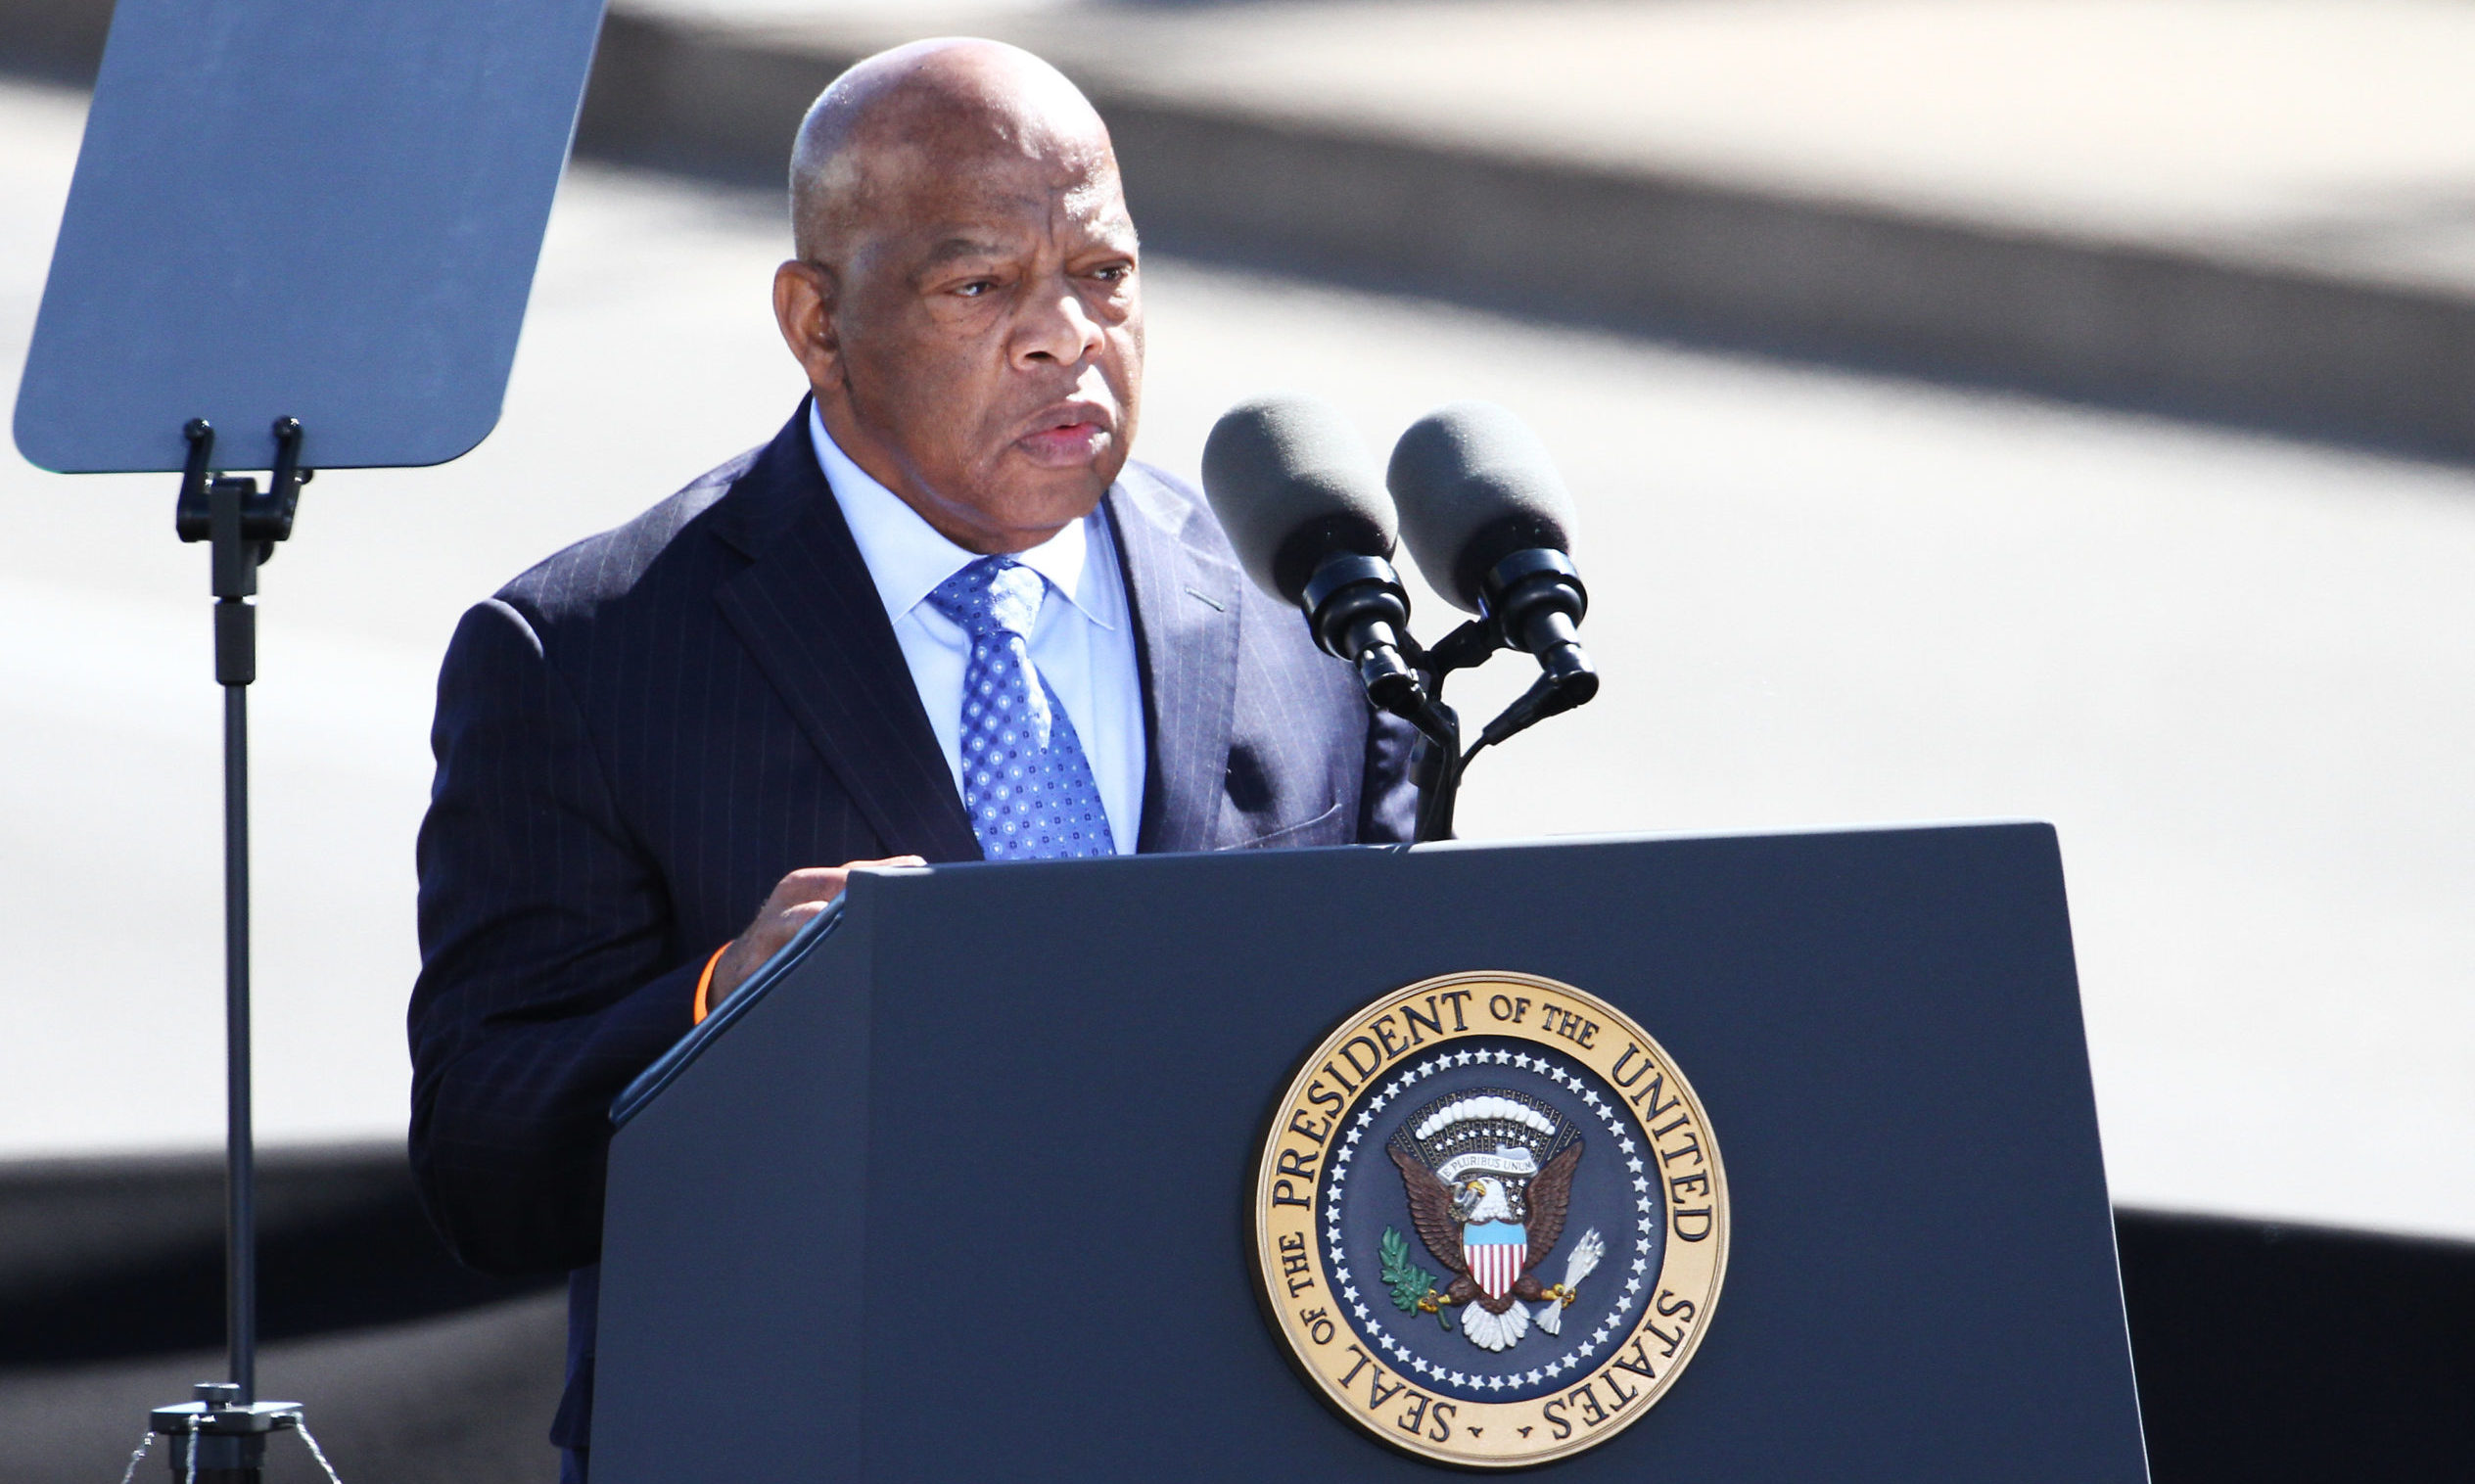 Civil Rights leader John Lewis speaks during activities commemorating the 50th anniversary of the Bloody Sunday crossing of the Edmund Pettus Bridge in Selma, Alabama, in March 2015.